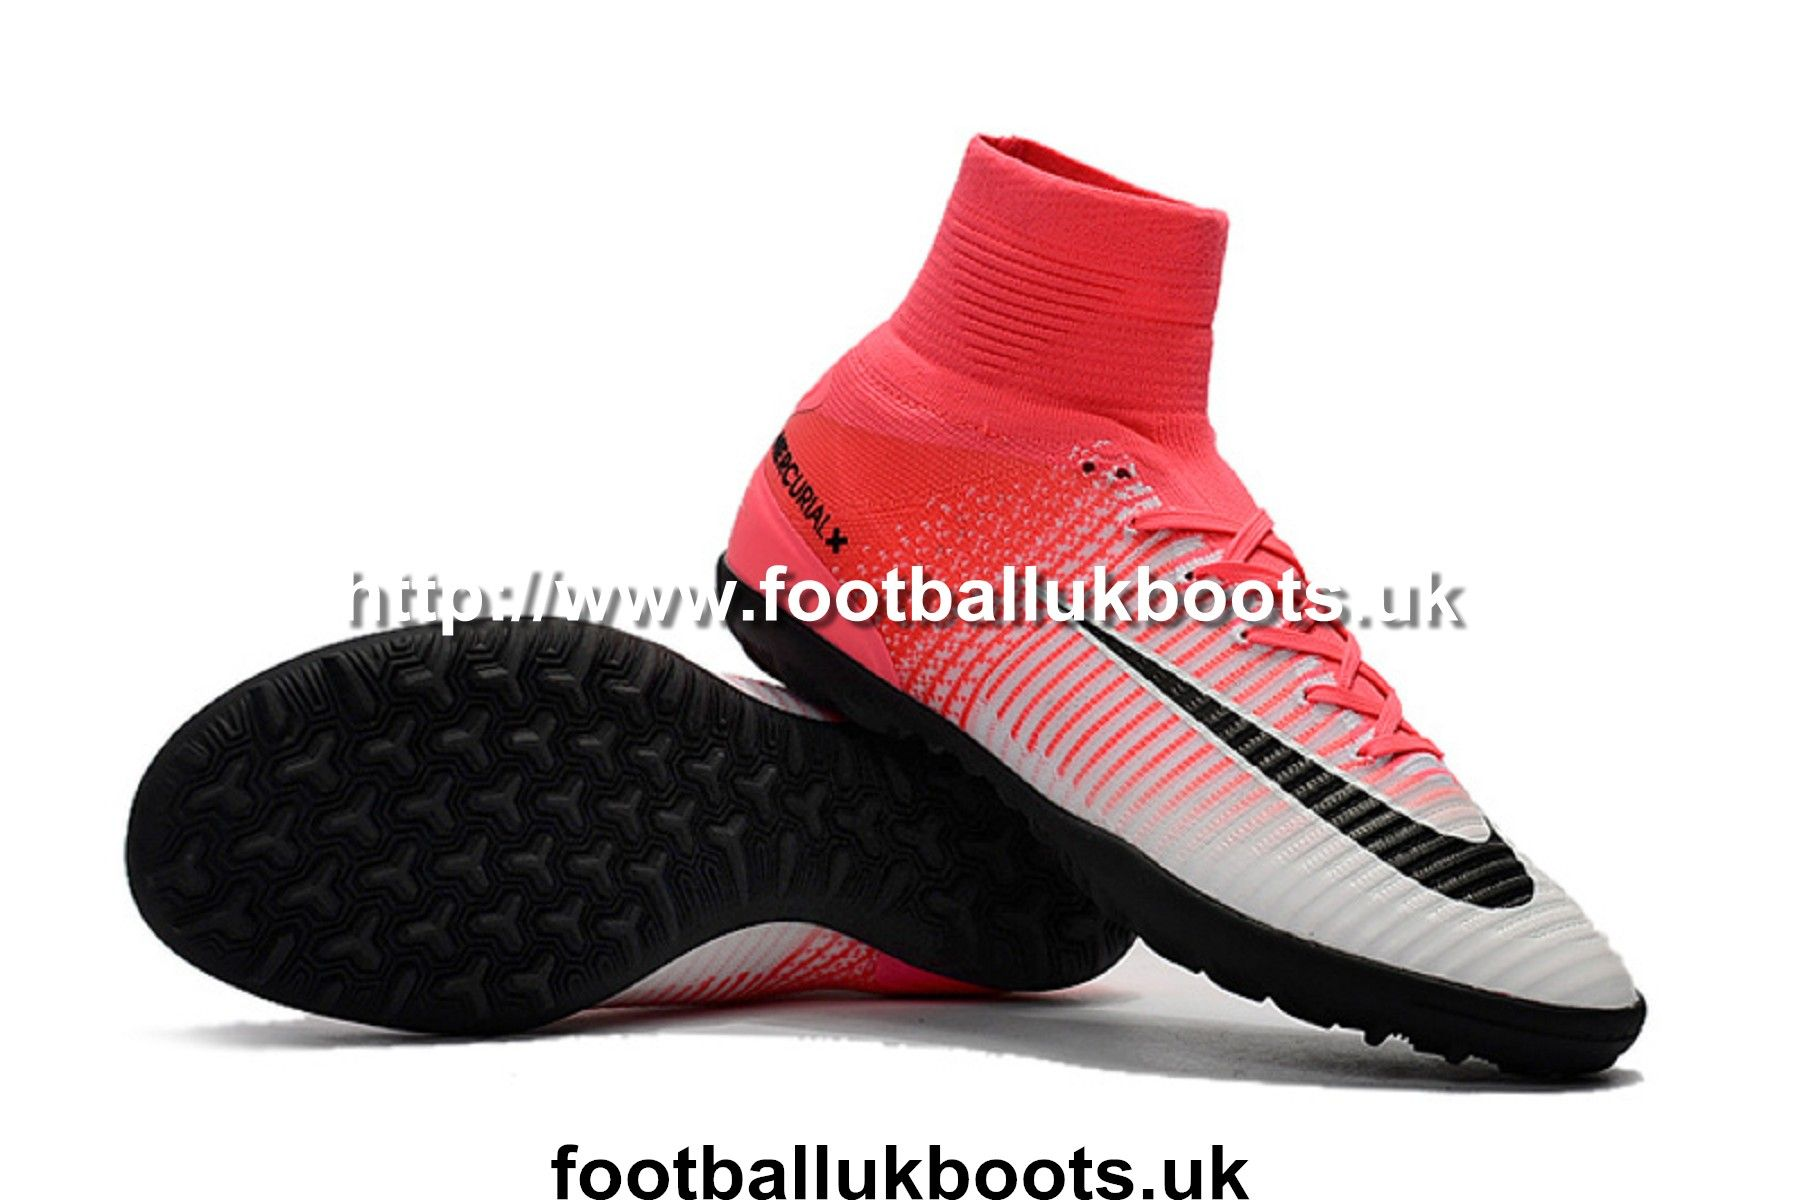 newest collection 99d32 432ae Luxury Kids Football Boots Nike MercurialX Proximo II TF - Race  Pink Black White